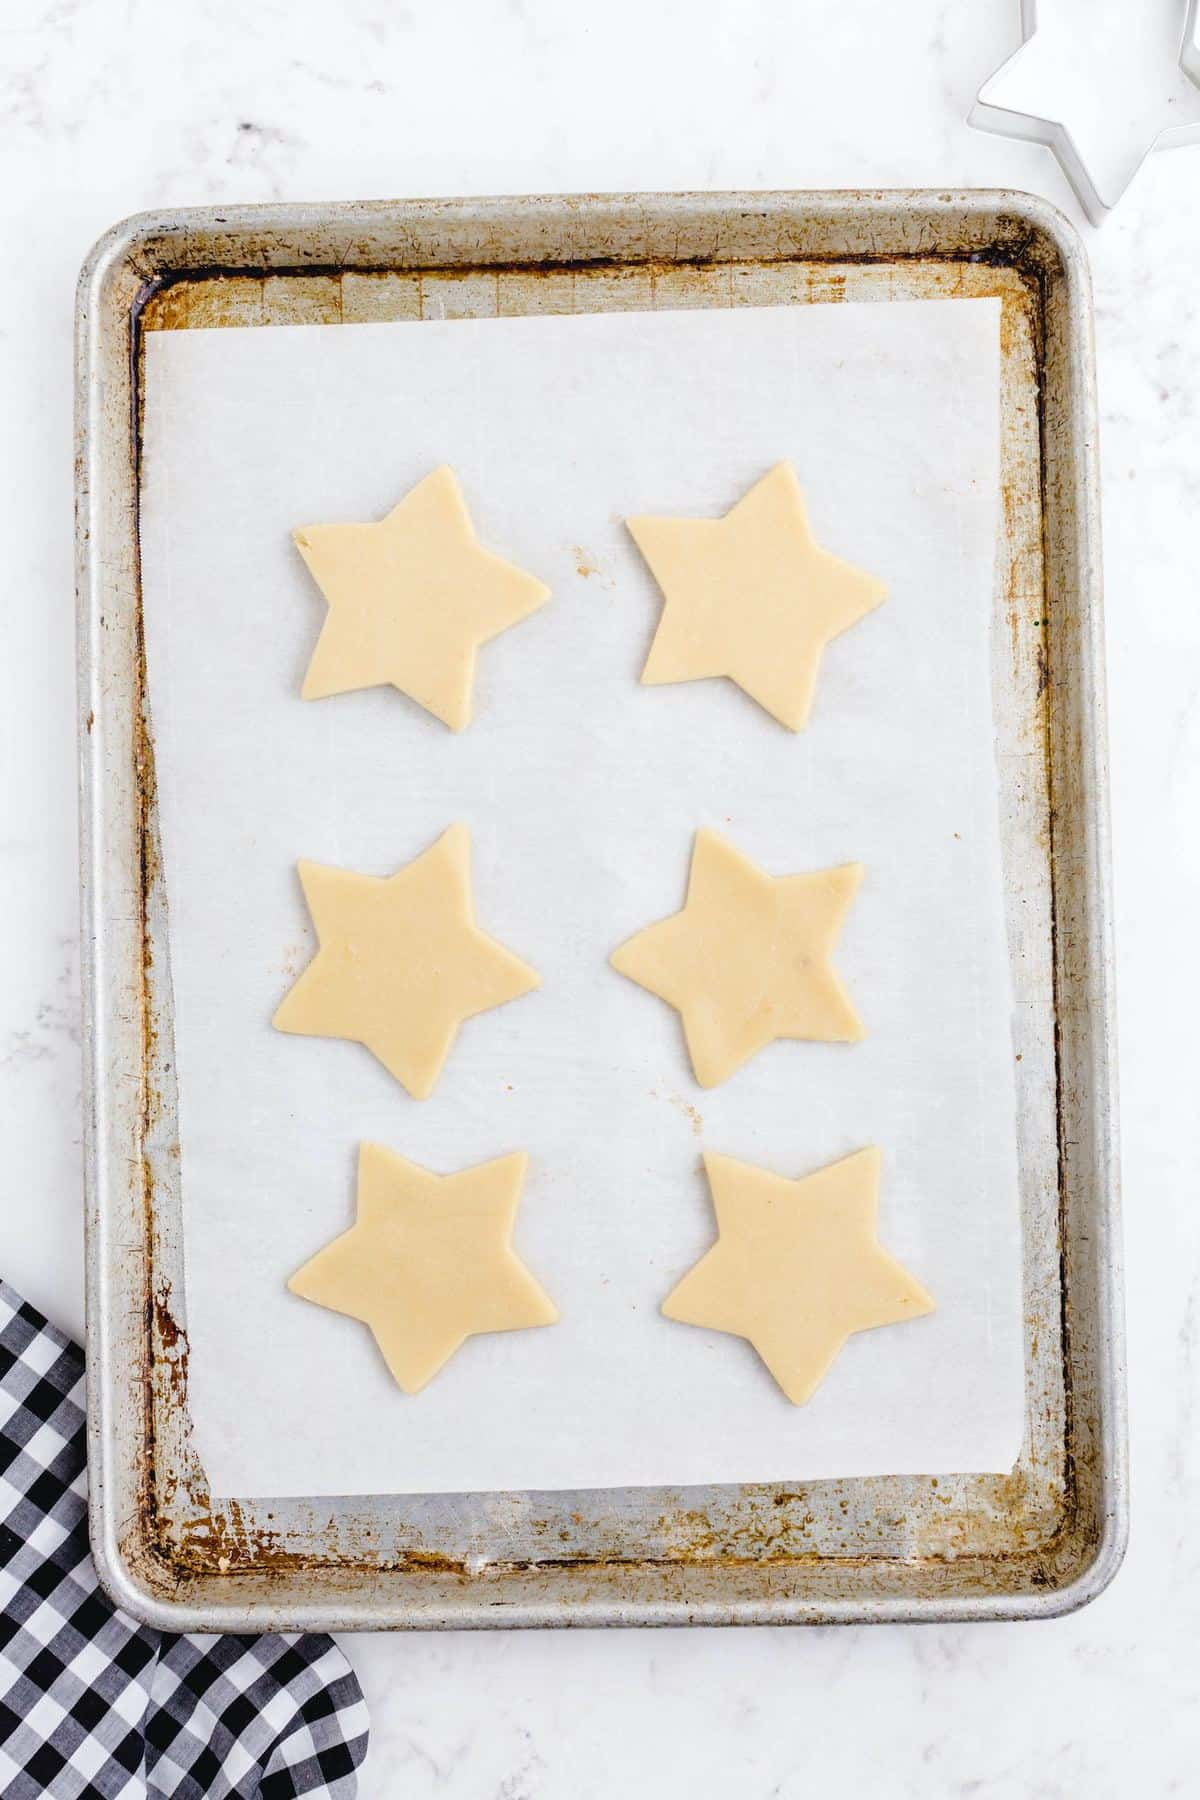 cut cookie dough into shape and put in baking pan